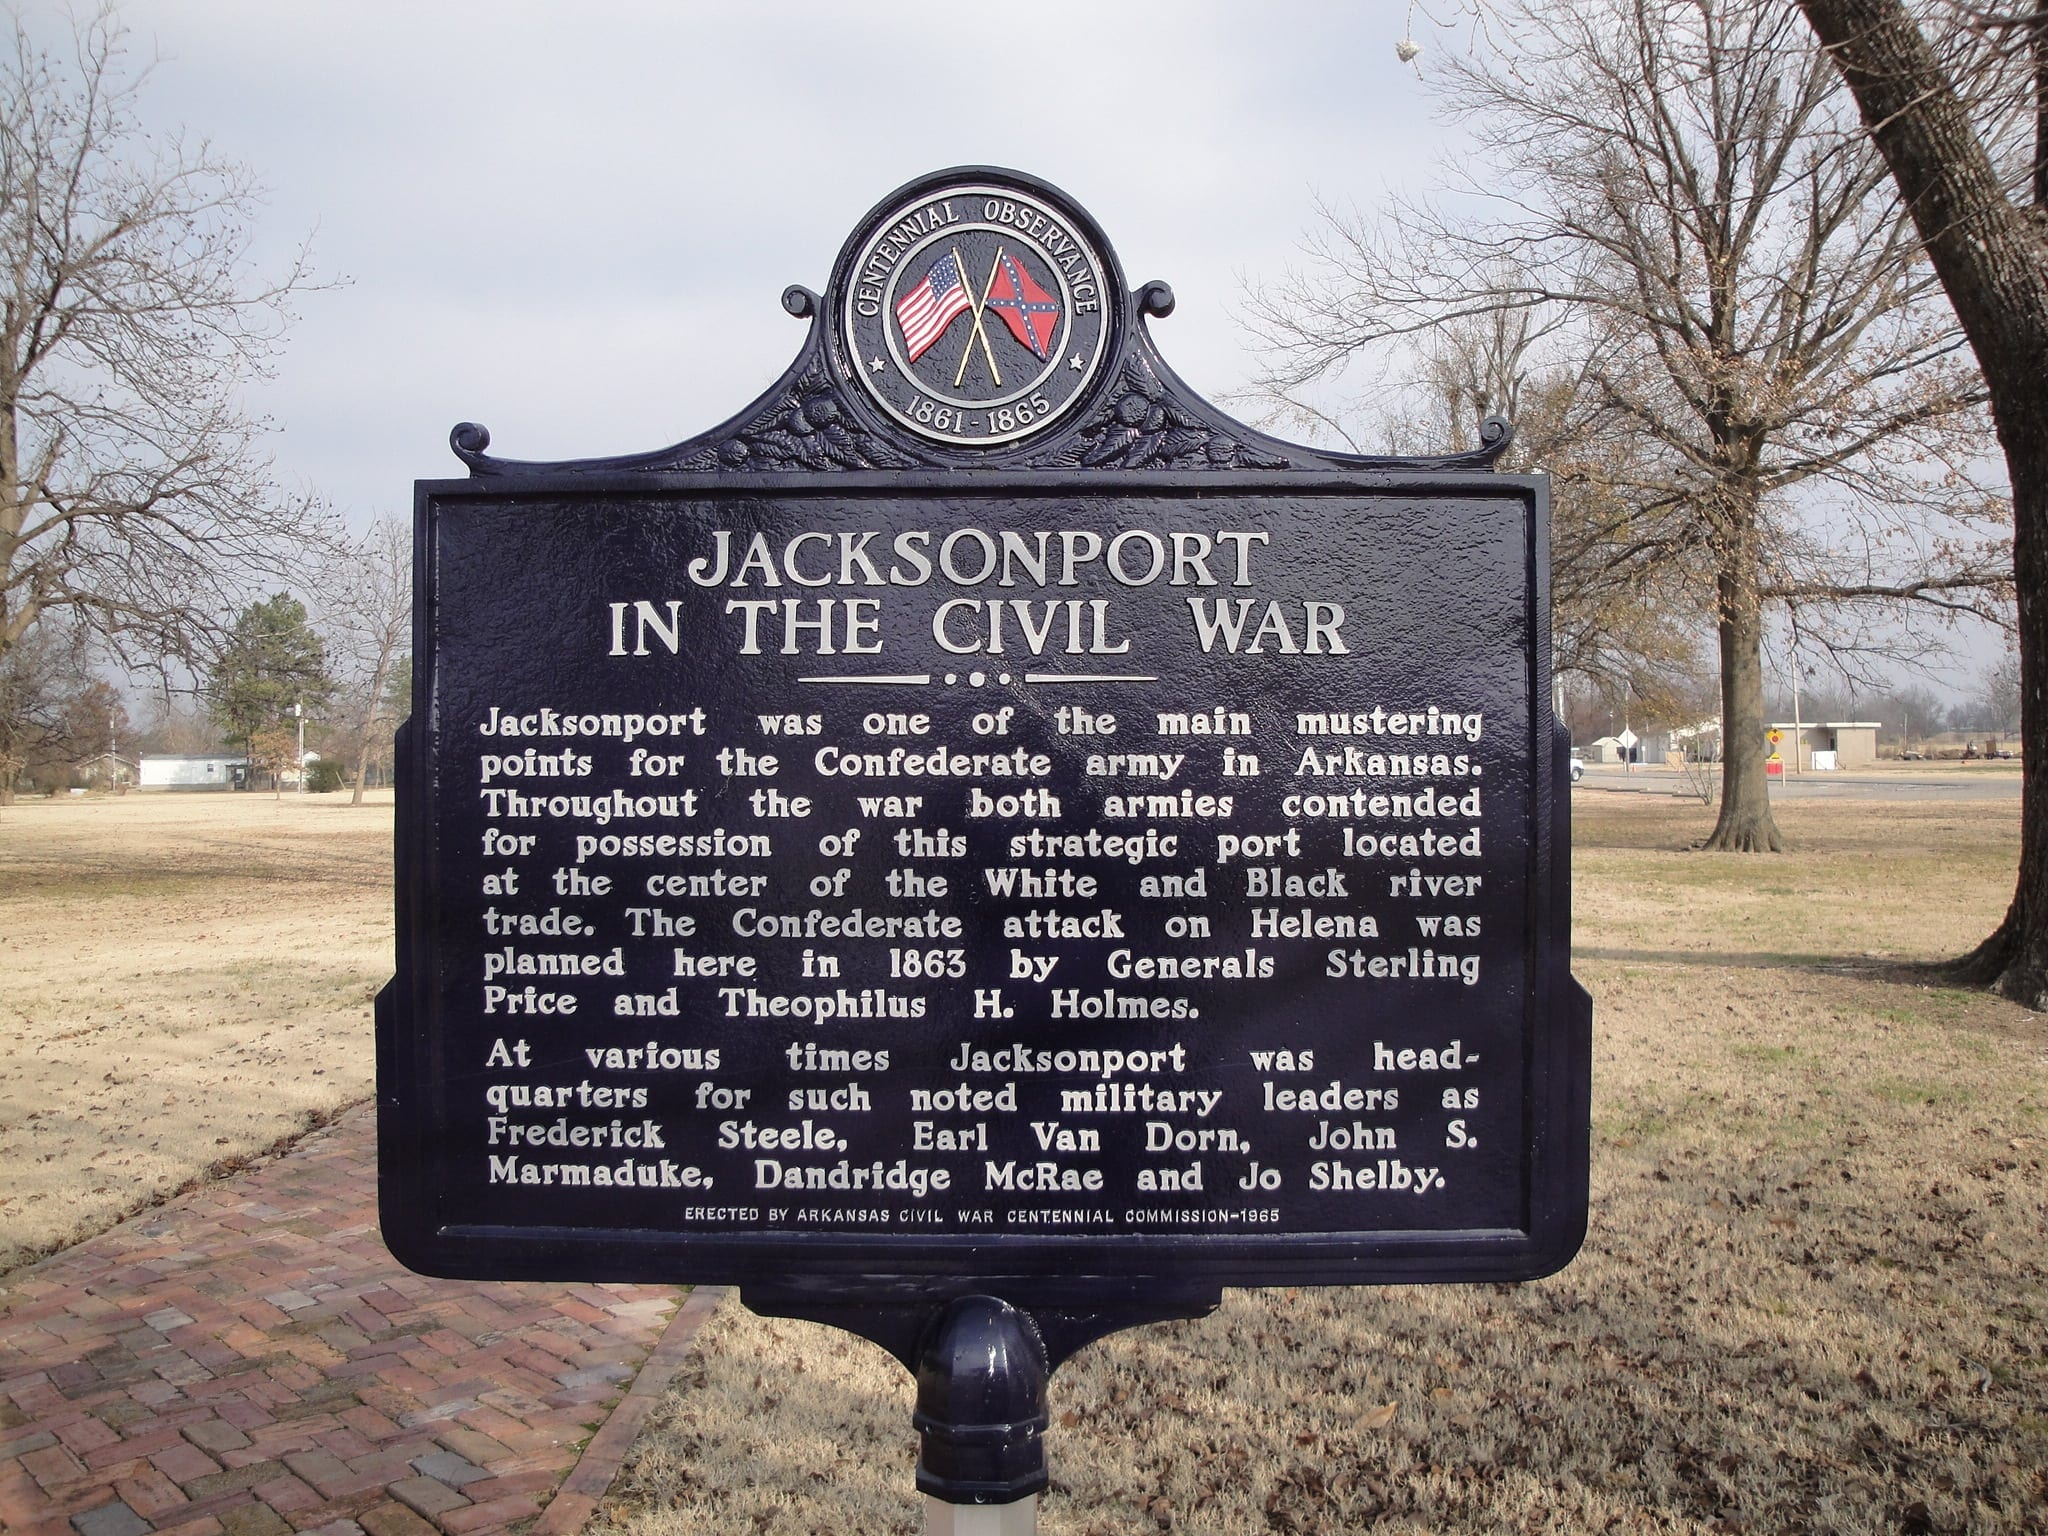 1965 – Jacksonport in the Civil War Historical Marker